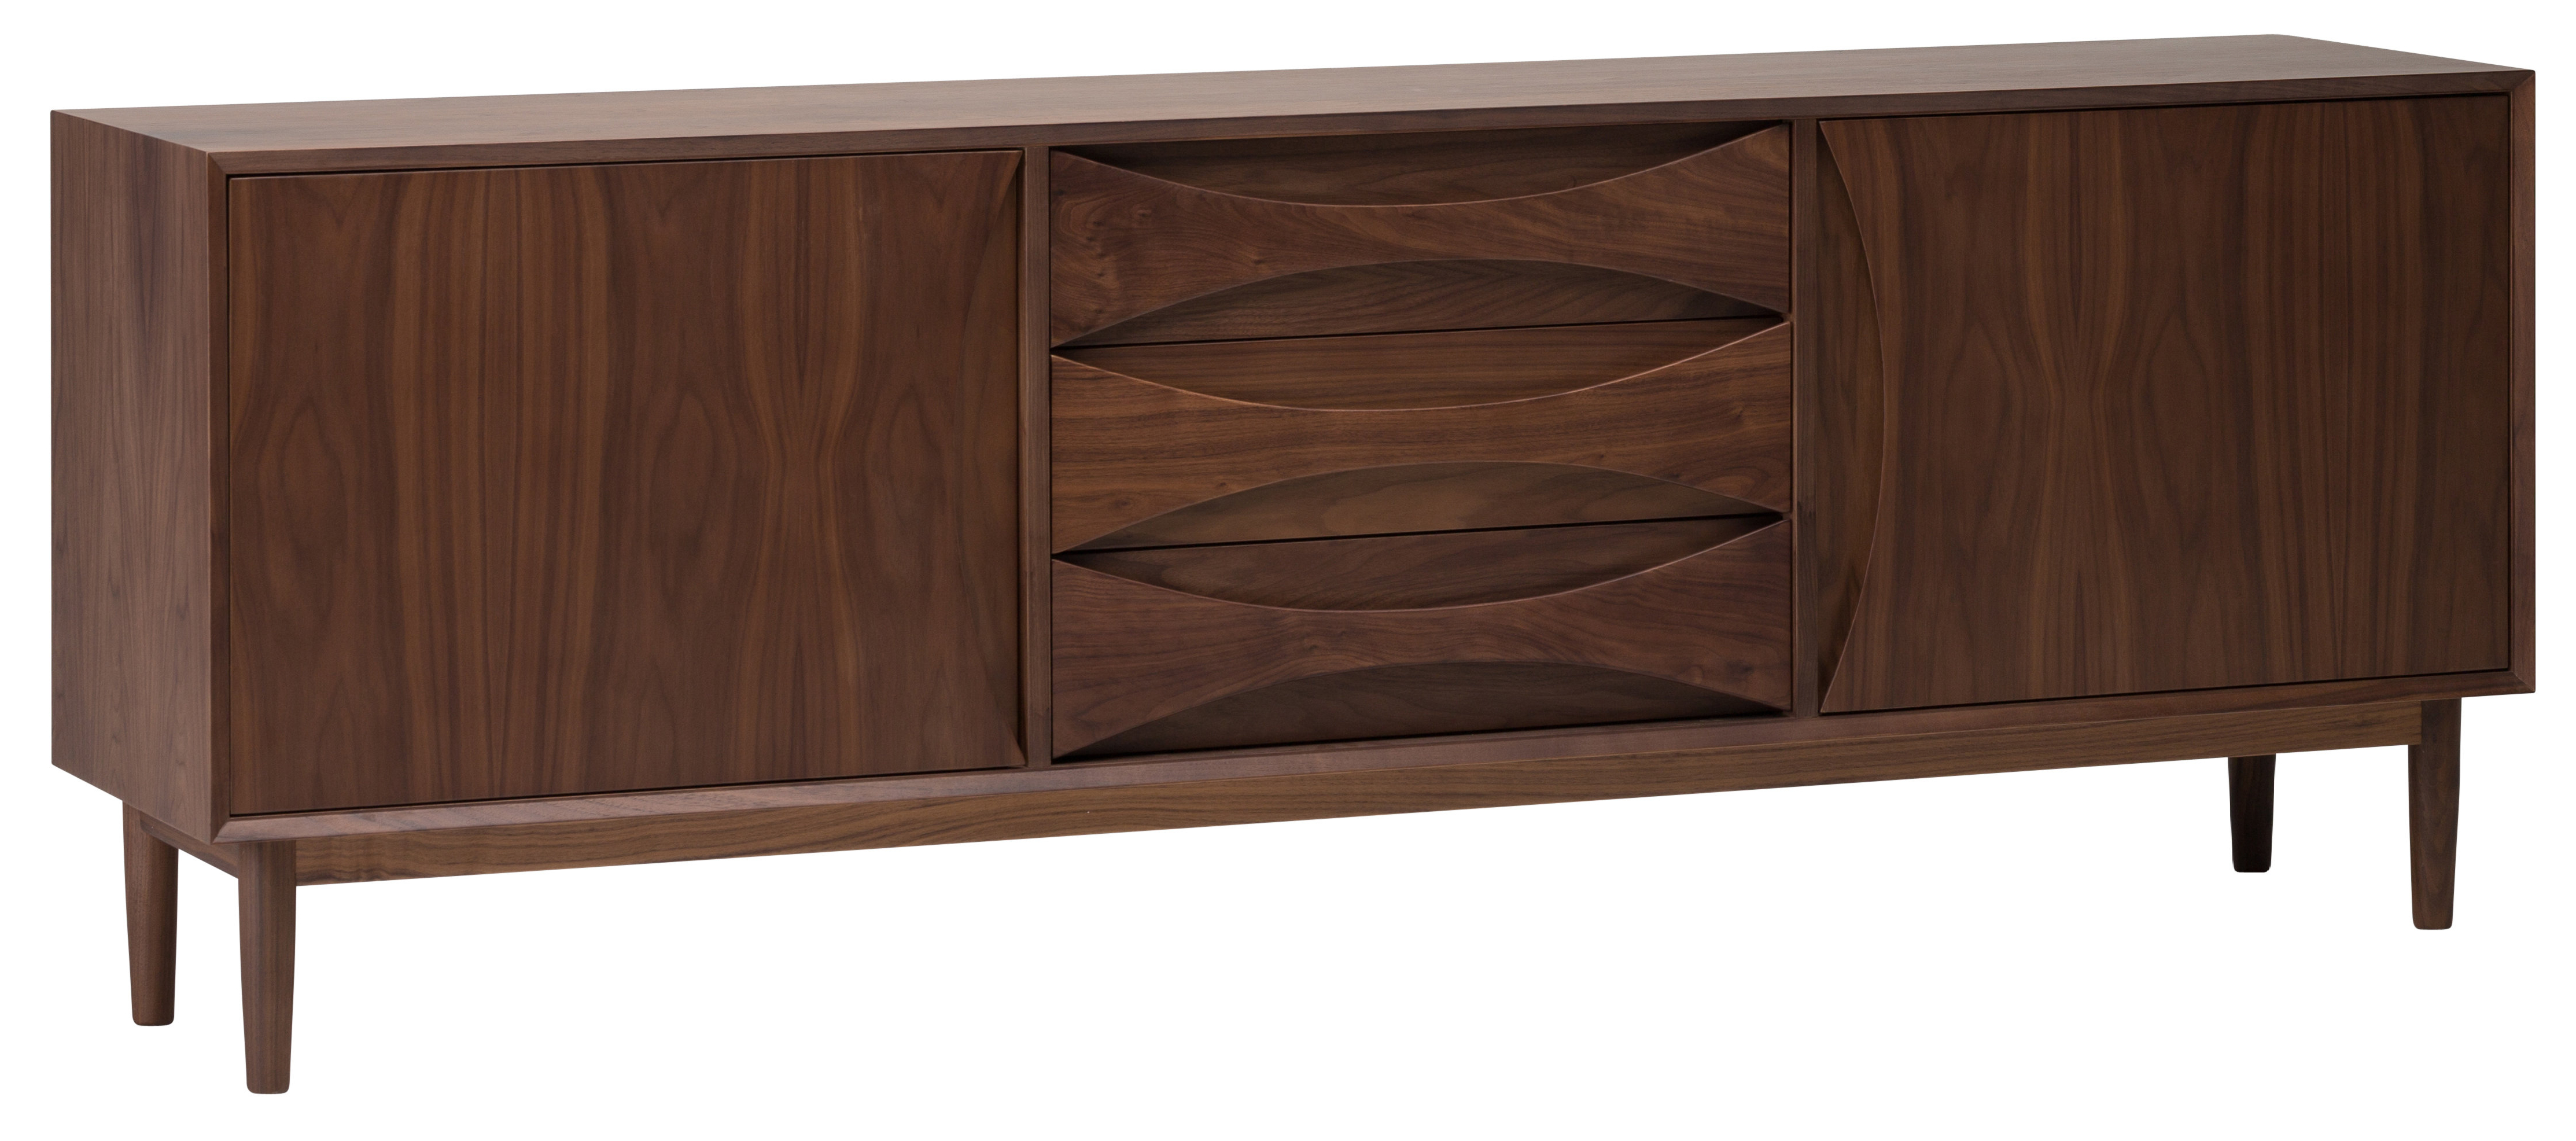 Well Liked Modern & Contemporary Elyza 4 Door Credenza (Gallery 17 of 20)